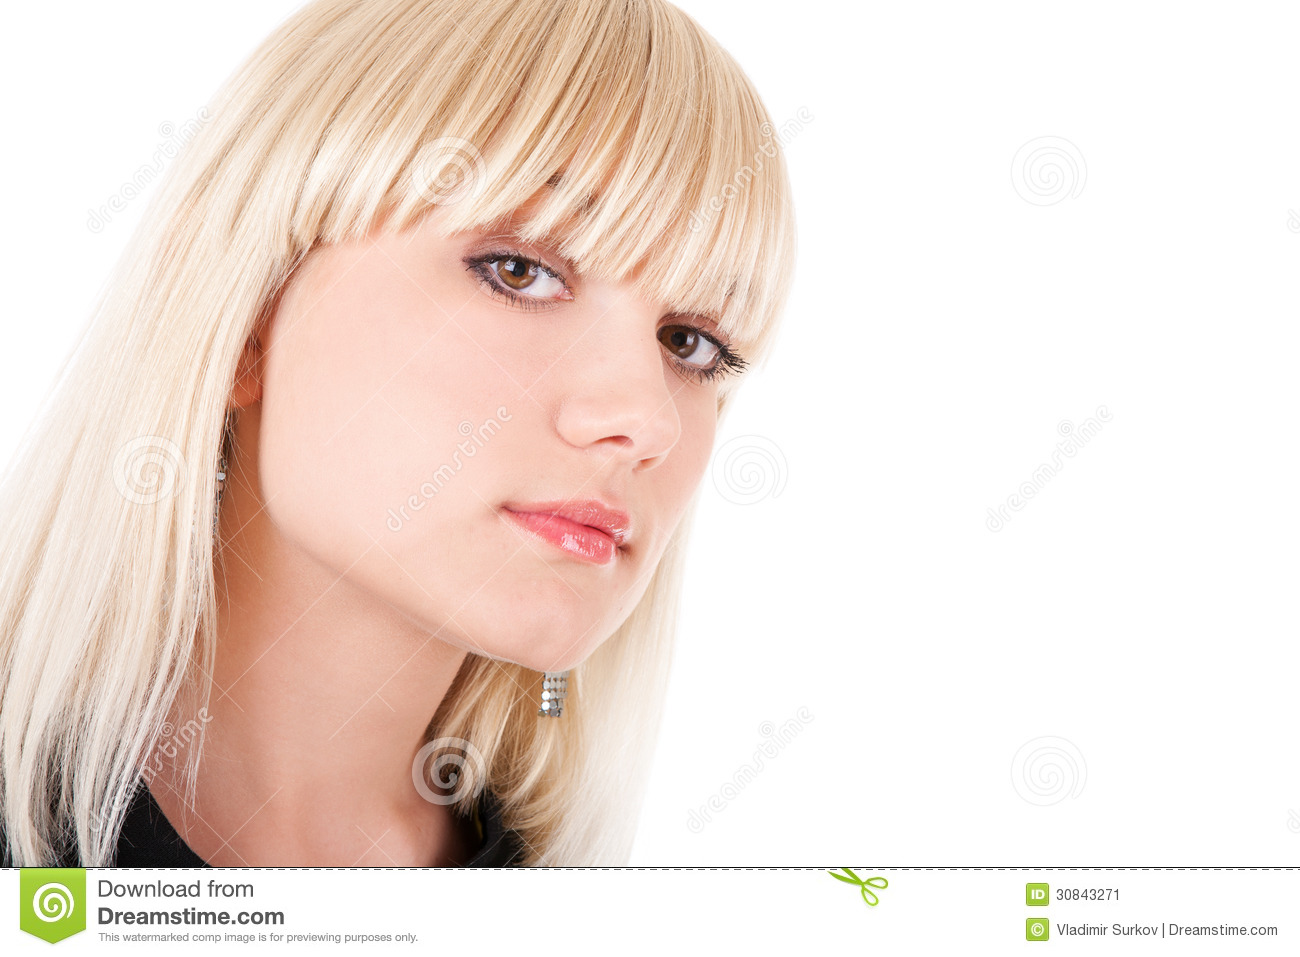 Haughty Look Of The Girl Stock Image - Image: 30843271